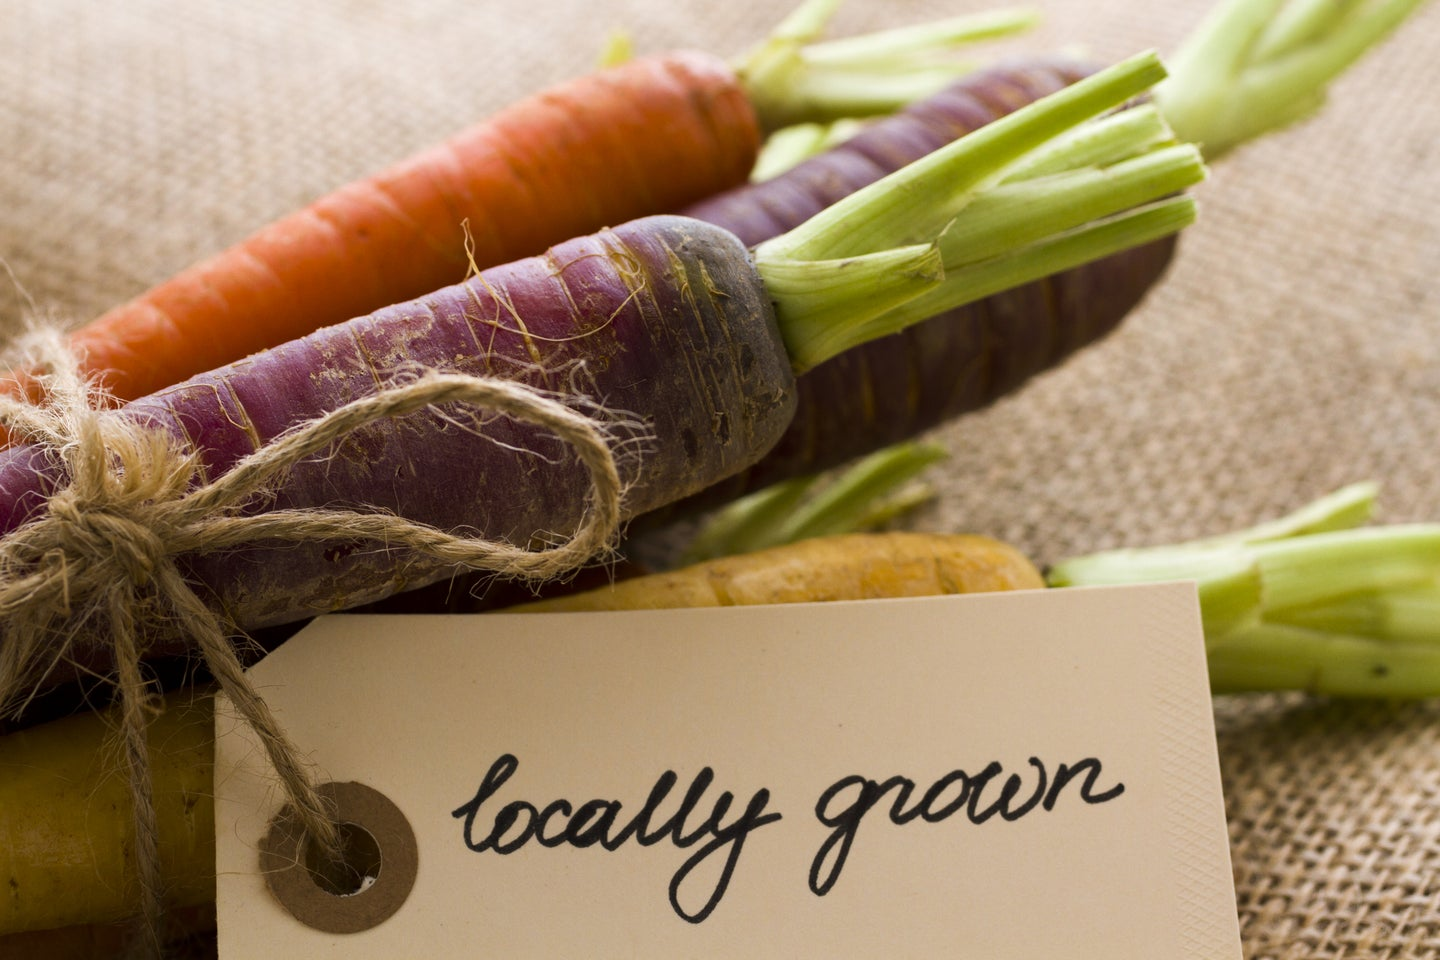 colorful carrots with locally grown tag attached